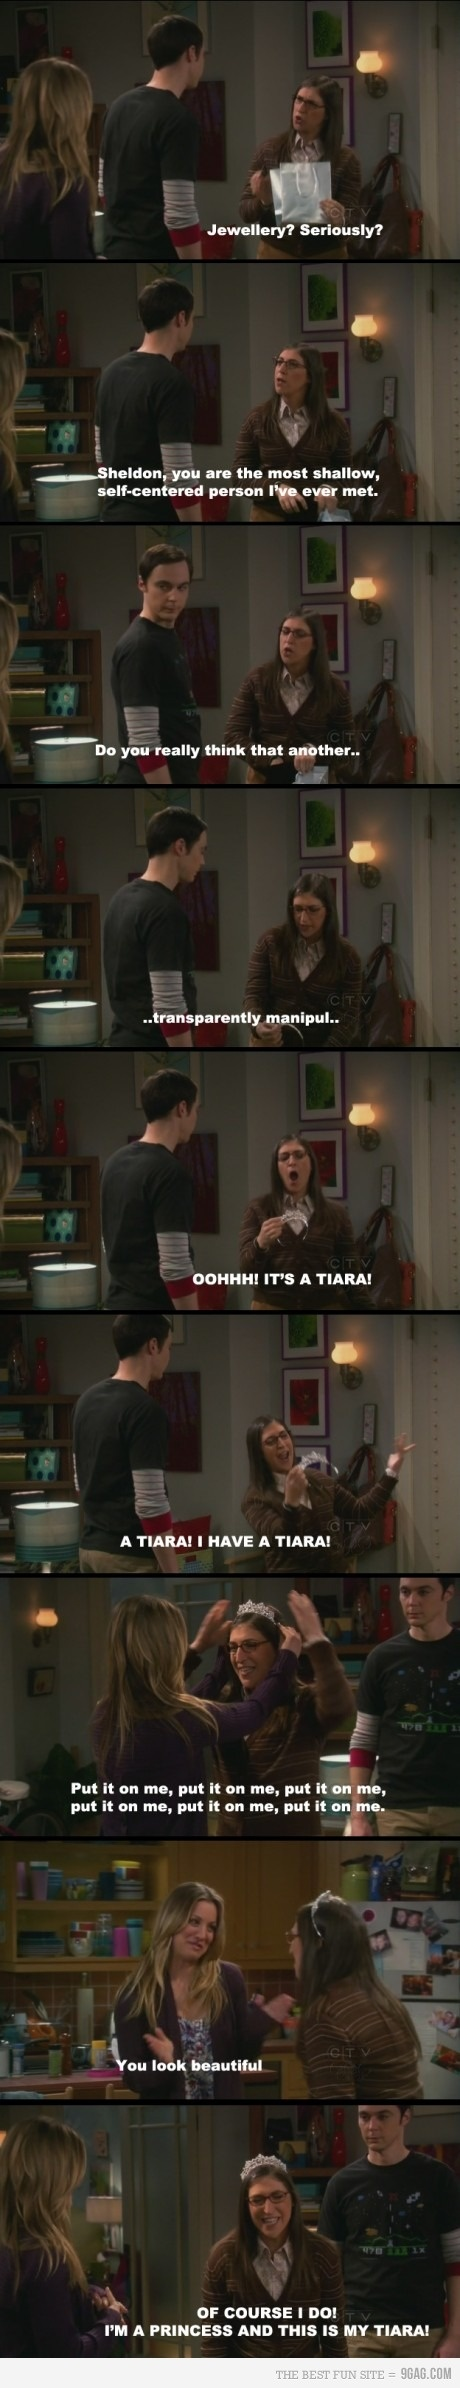 Love me some Big Bang Theory (Especially Amy!!!!!), but this is SO me in a nutshell.  I go cookoo for sparklies!  Oh, and I convinced my mom to buy me a tiara I saw in a case at the fabric store when I was like, 5.  And I wore it regularly.